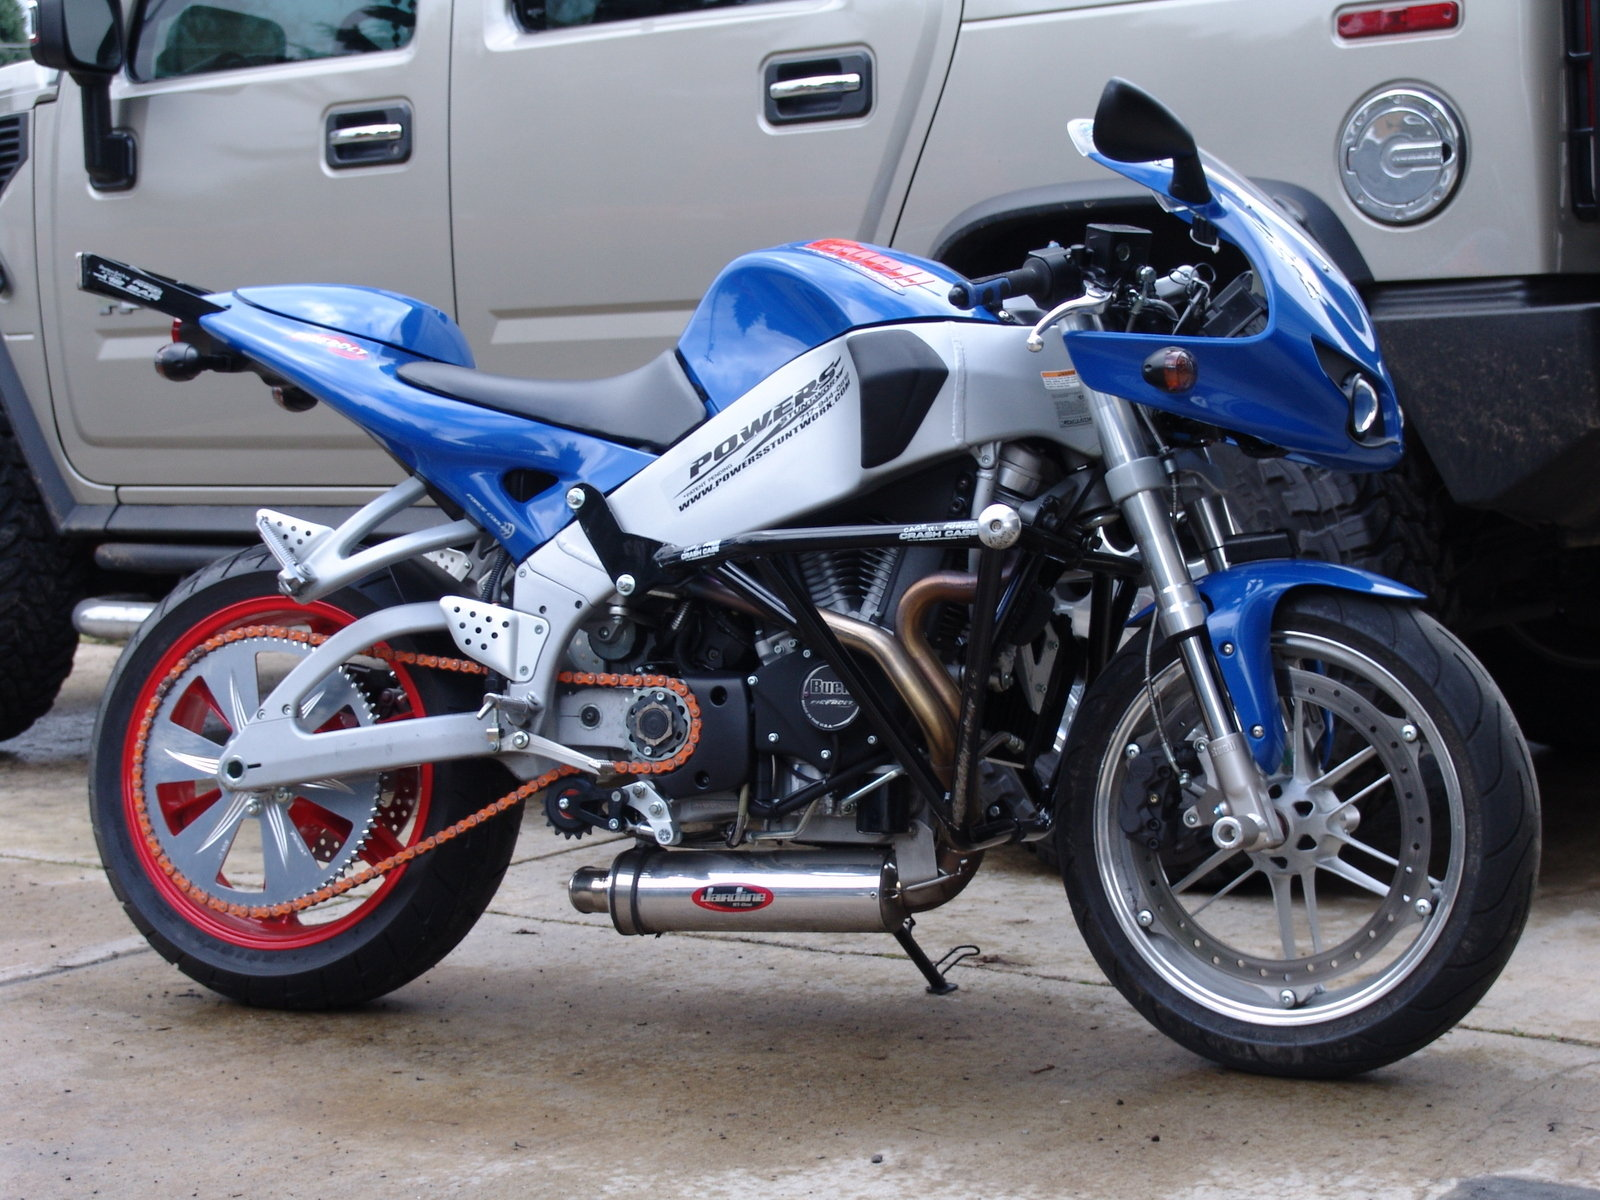 2006 Buell Firebolt XB9R Picture 172824 Motorcycle